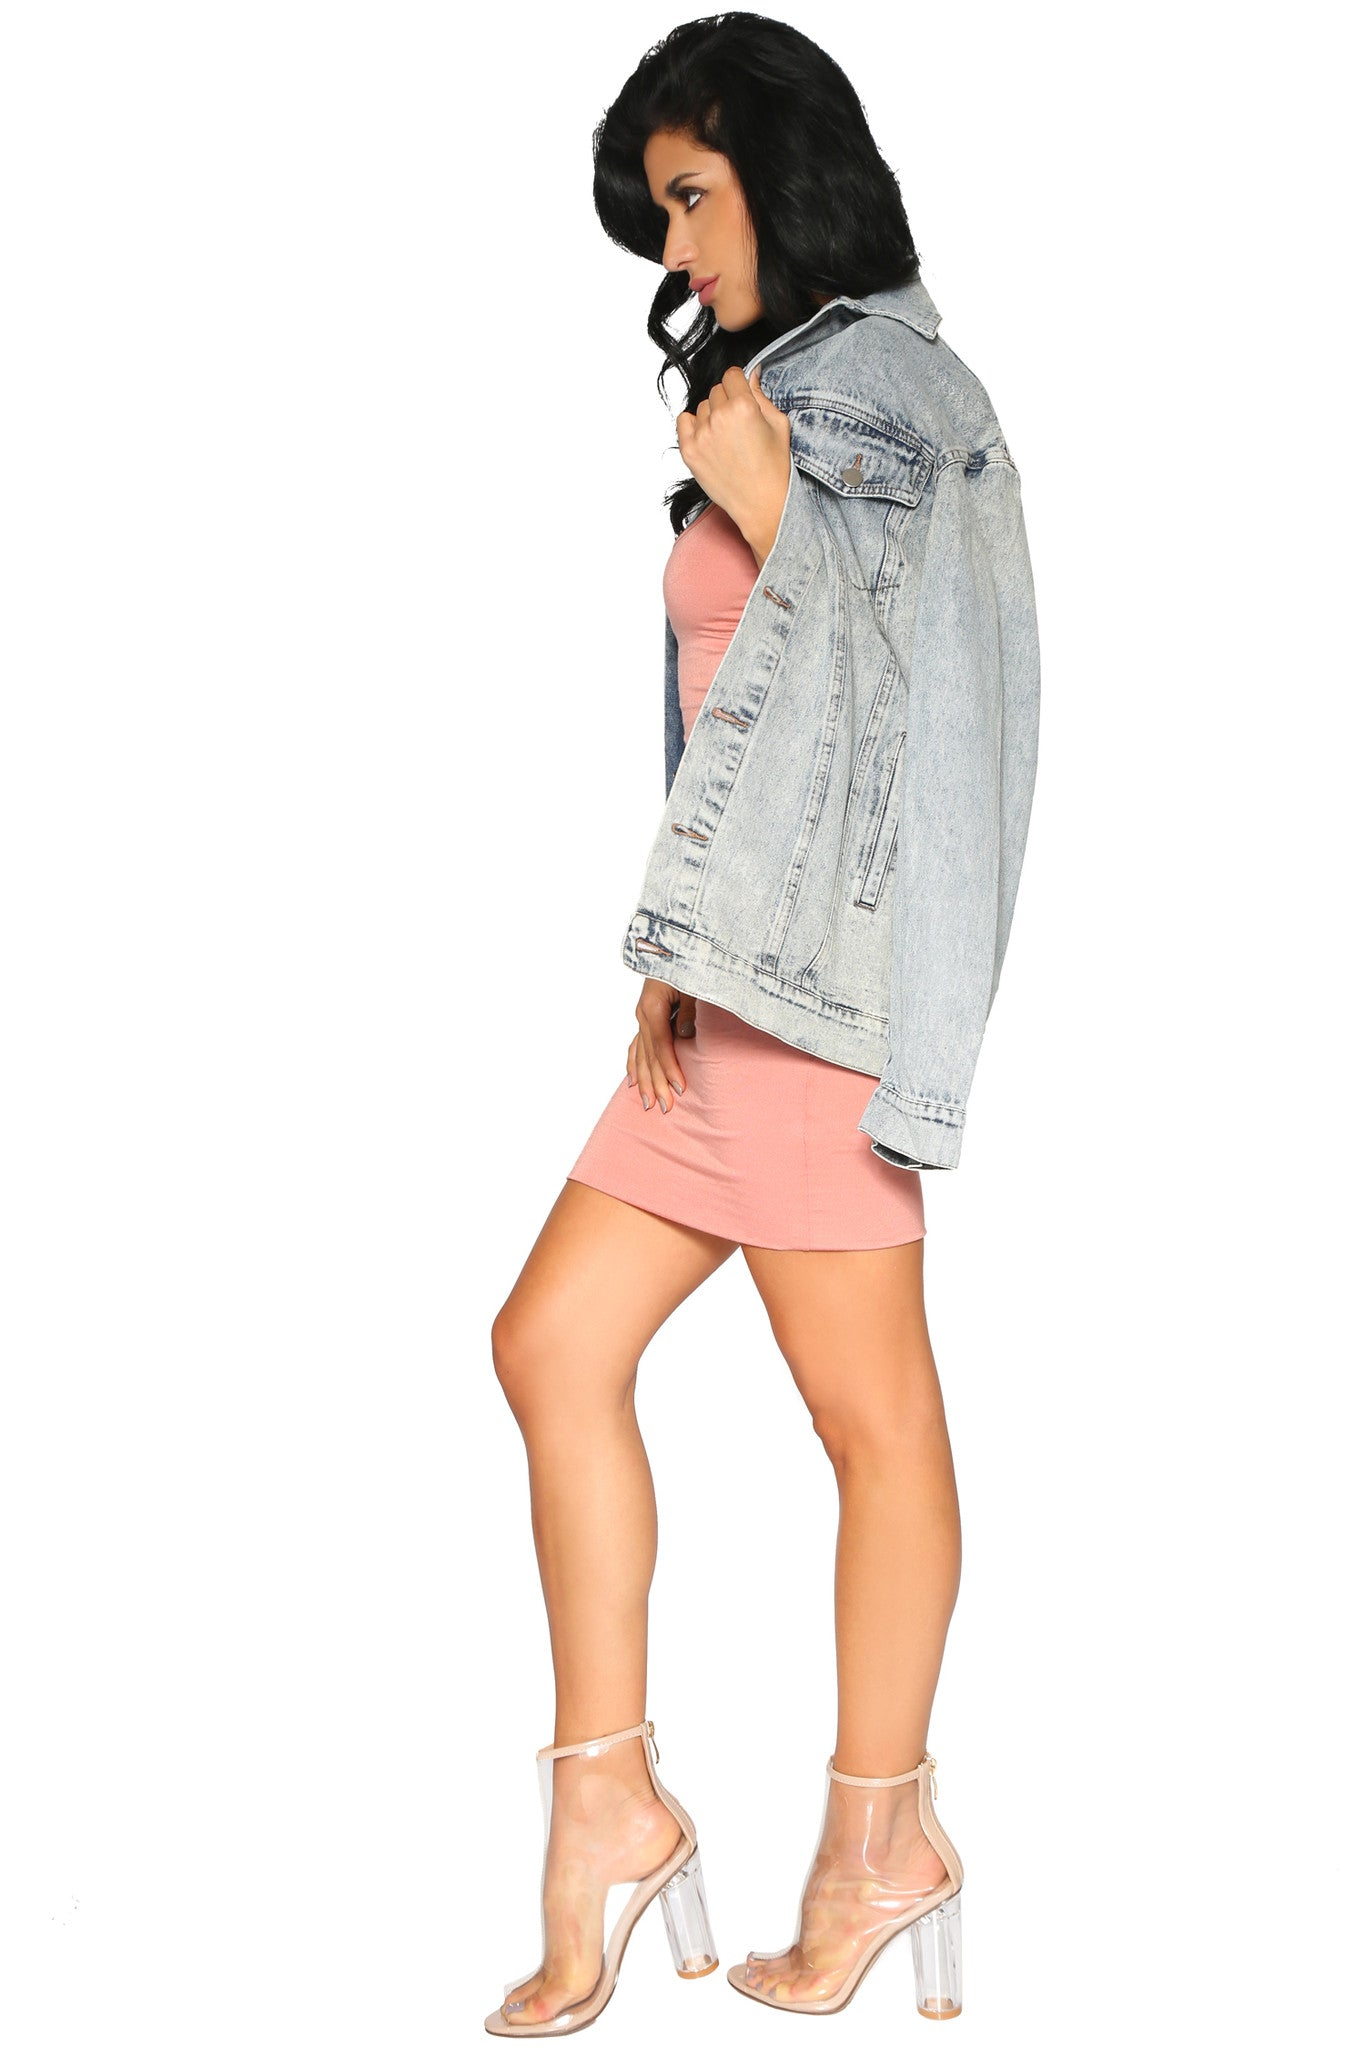 CLEO OVERSIZED DENIM JACKET - Glam Envy - 5